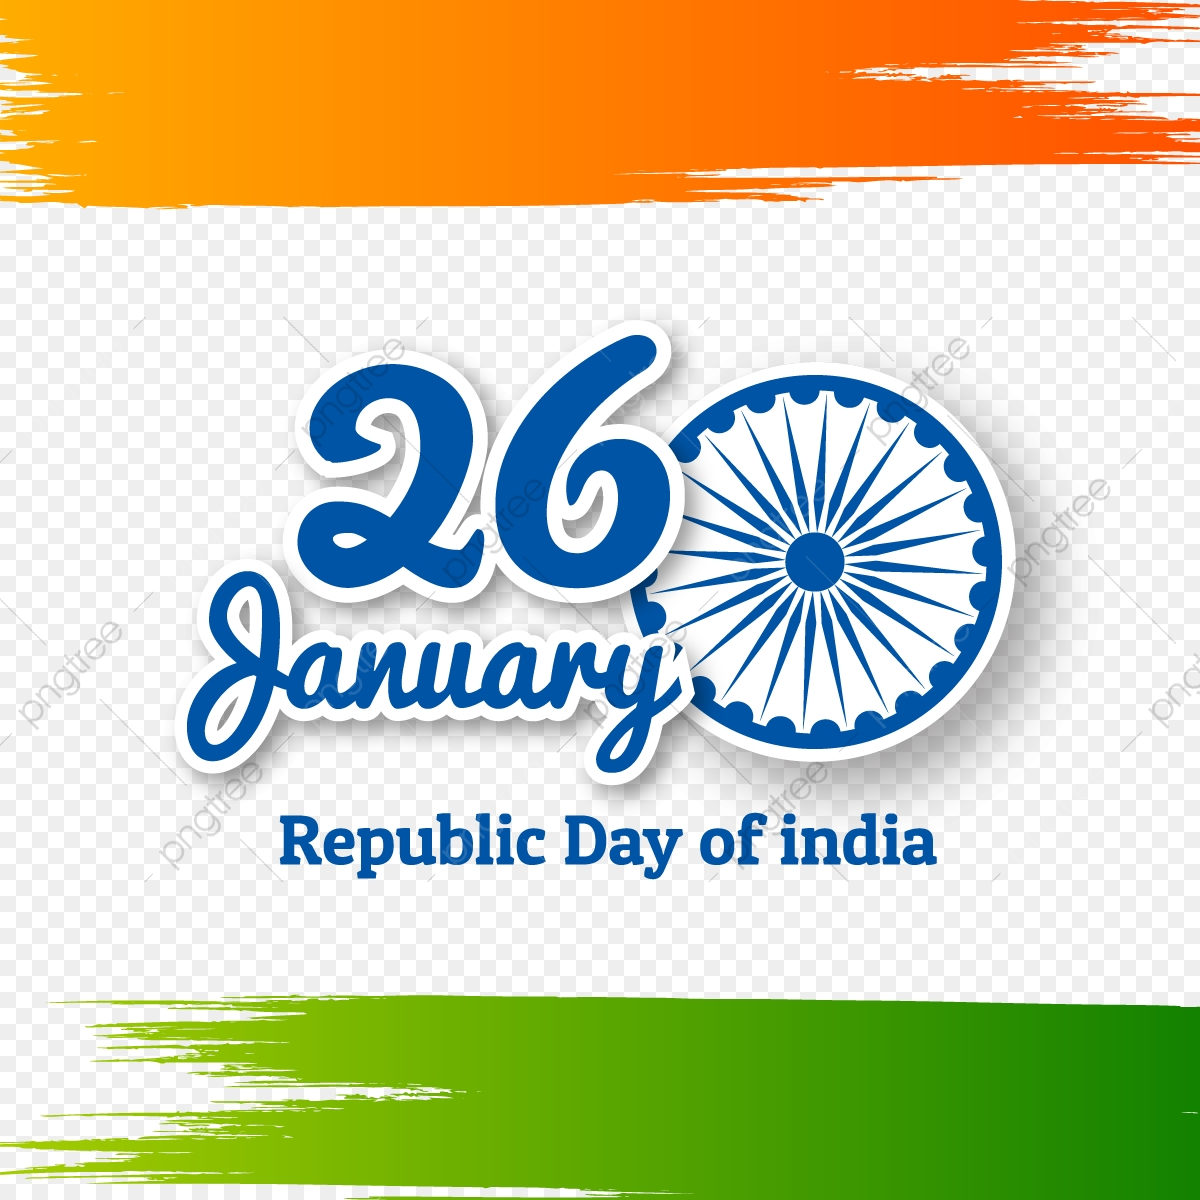 26 january image hd png indian republic day concept with text  january, republic